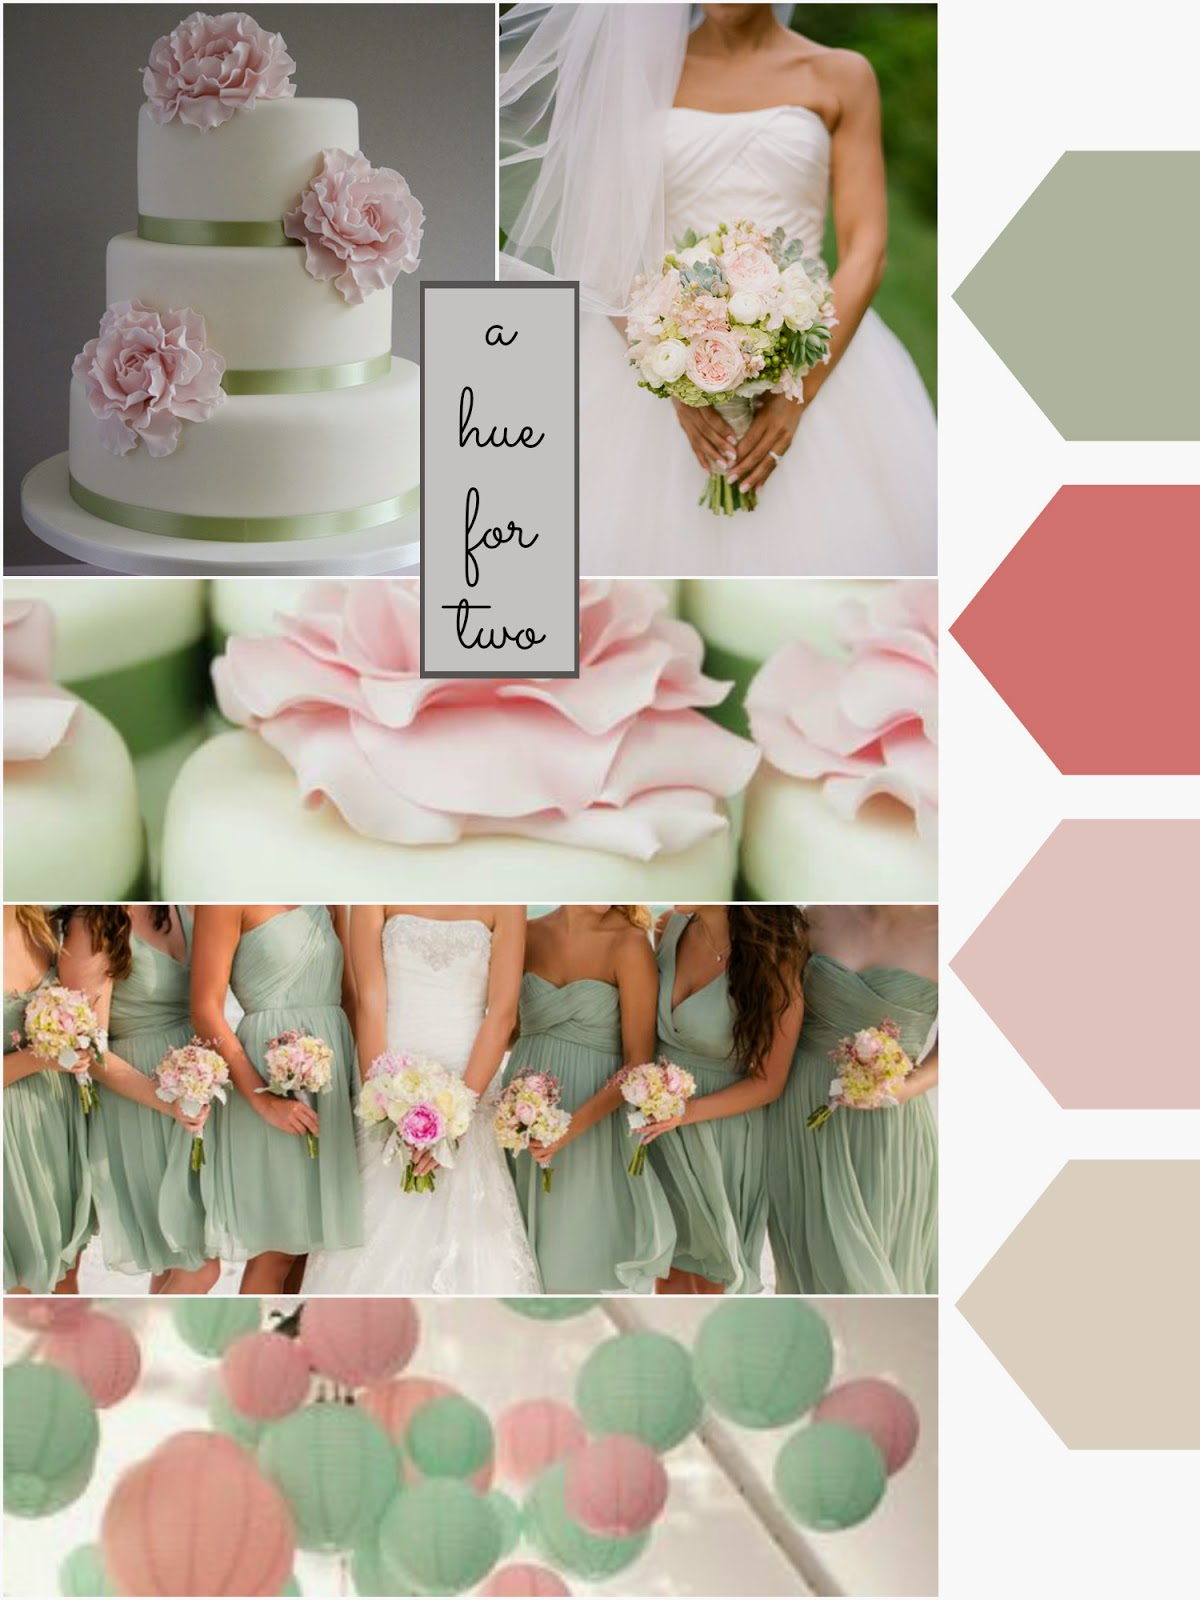 My Inspiration Behind This Colour Scheme Was Age Self I Incorporated Light Sage C And Pink To Create A Pastel Wedding Palette That Isn T